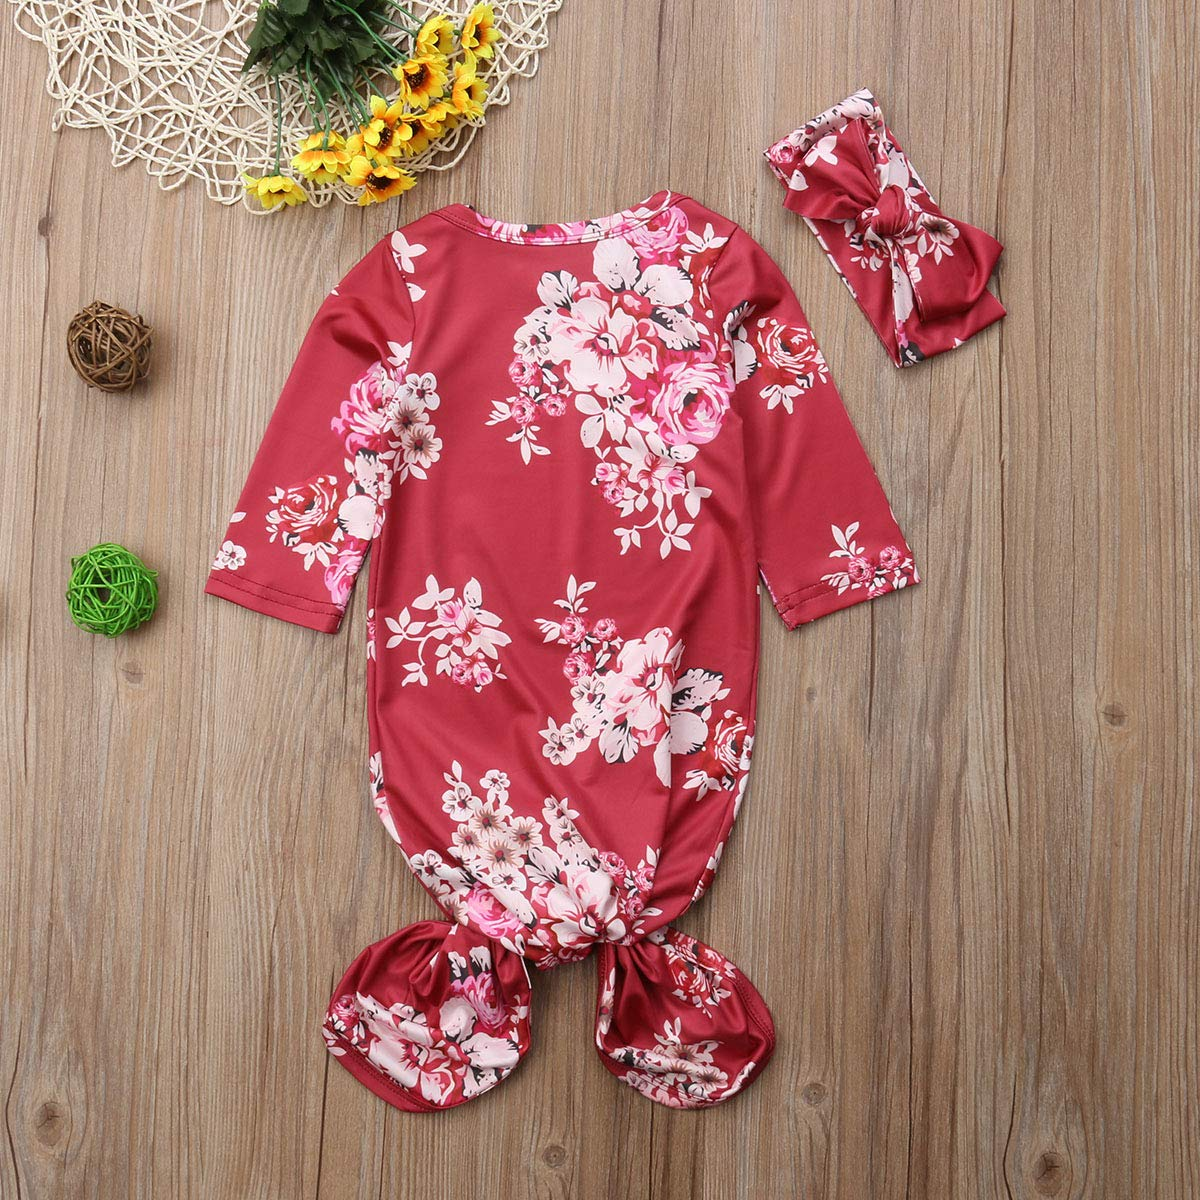 Fanveraka Baby Girl Floral Sleepwear Nightgowns with Headband Sleeping Bags Coming Home Outfits 0-6Months